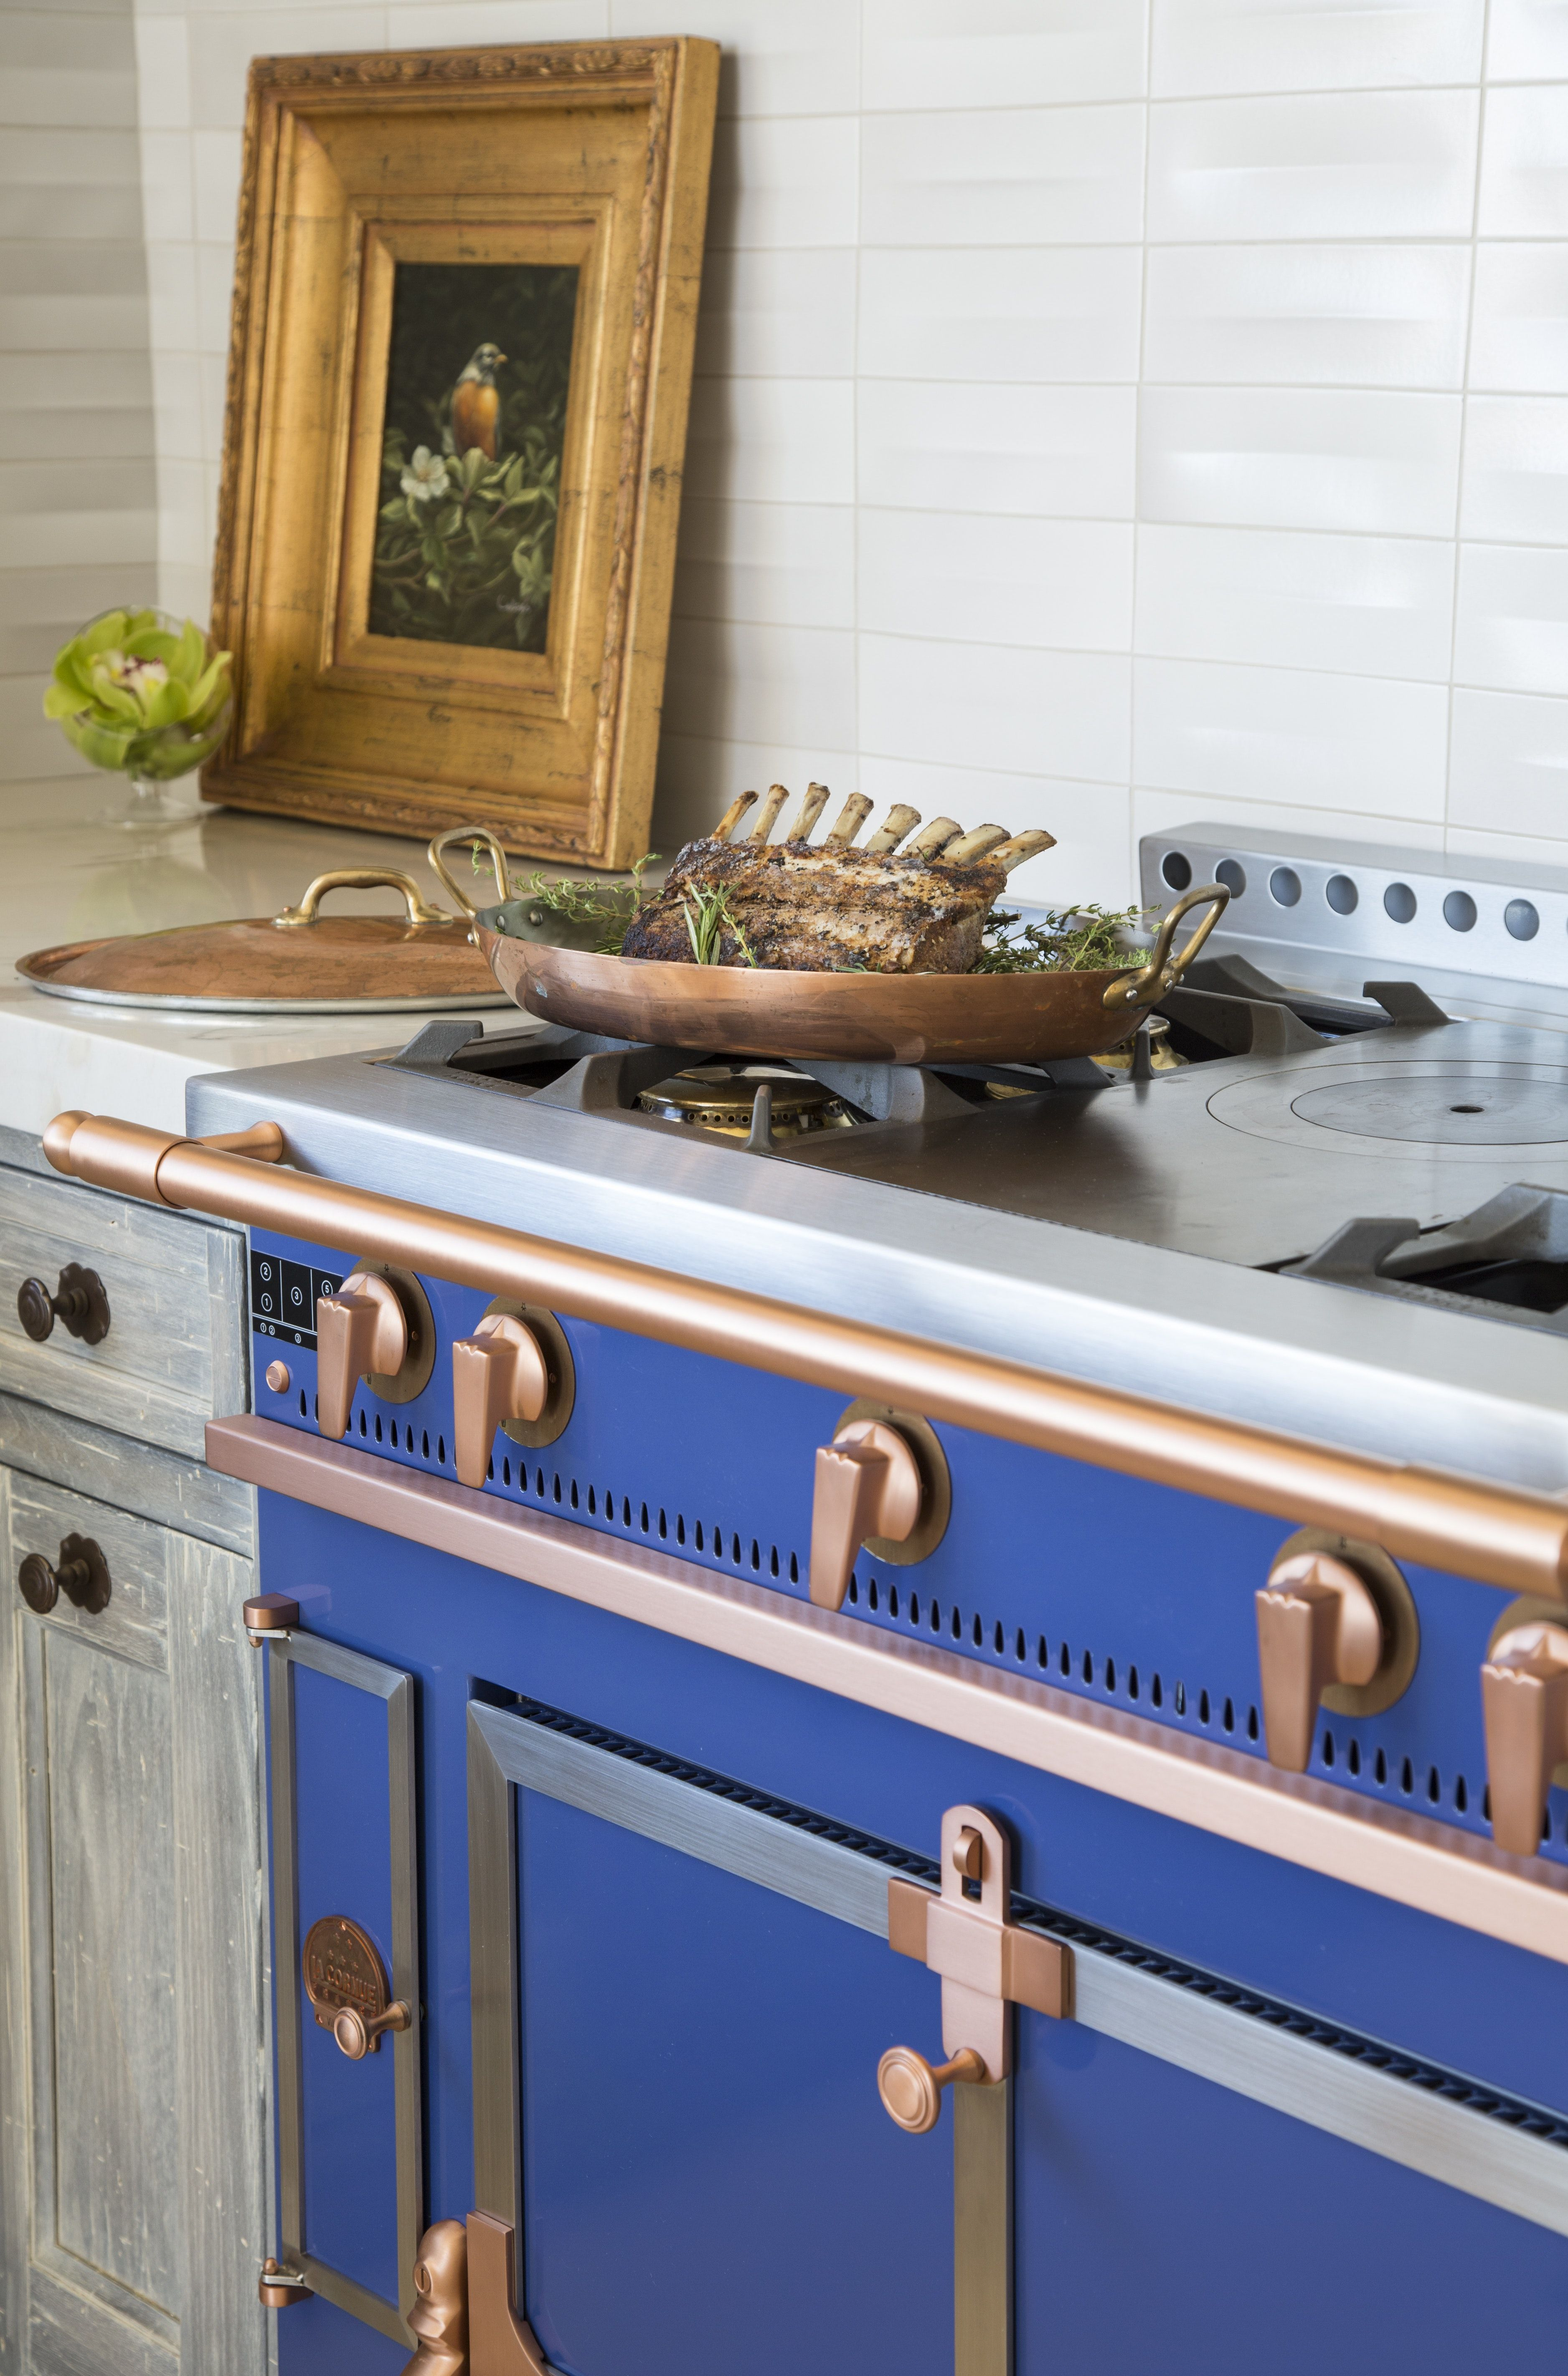 rolling hills california kitchen with blue la cornue with art in the kitchen kitchen on kitchen interior top view id=61621